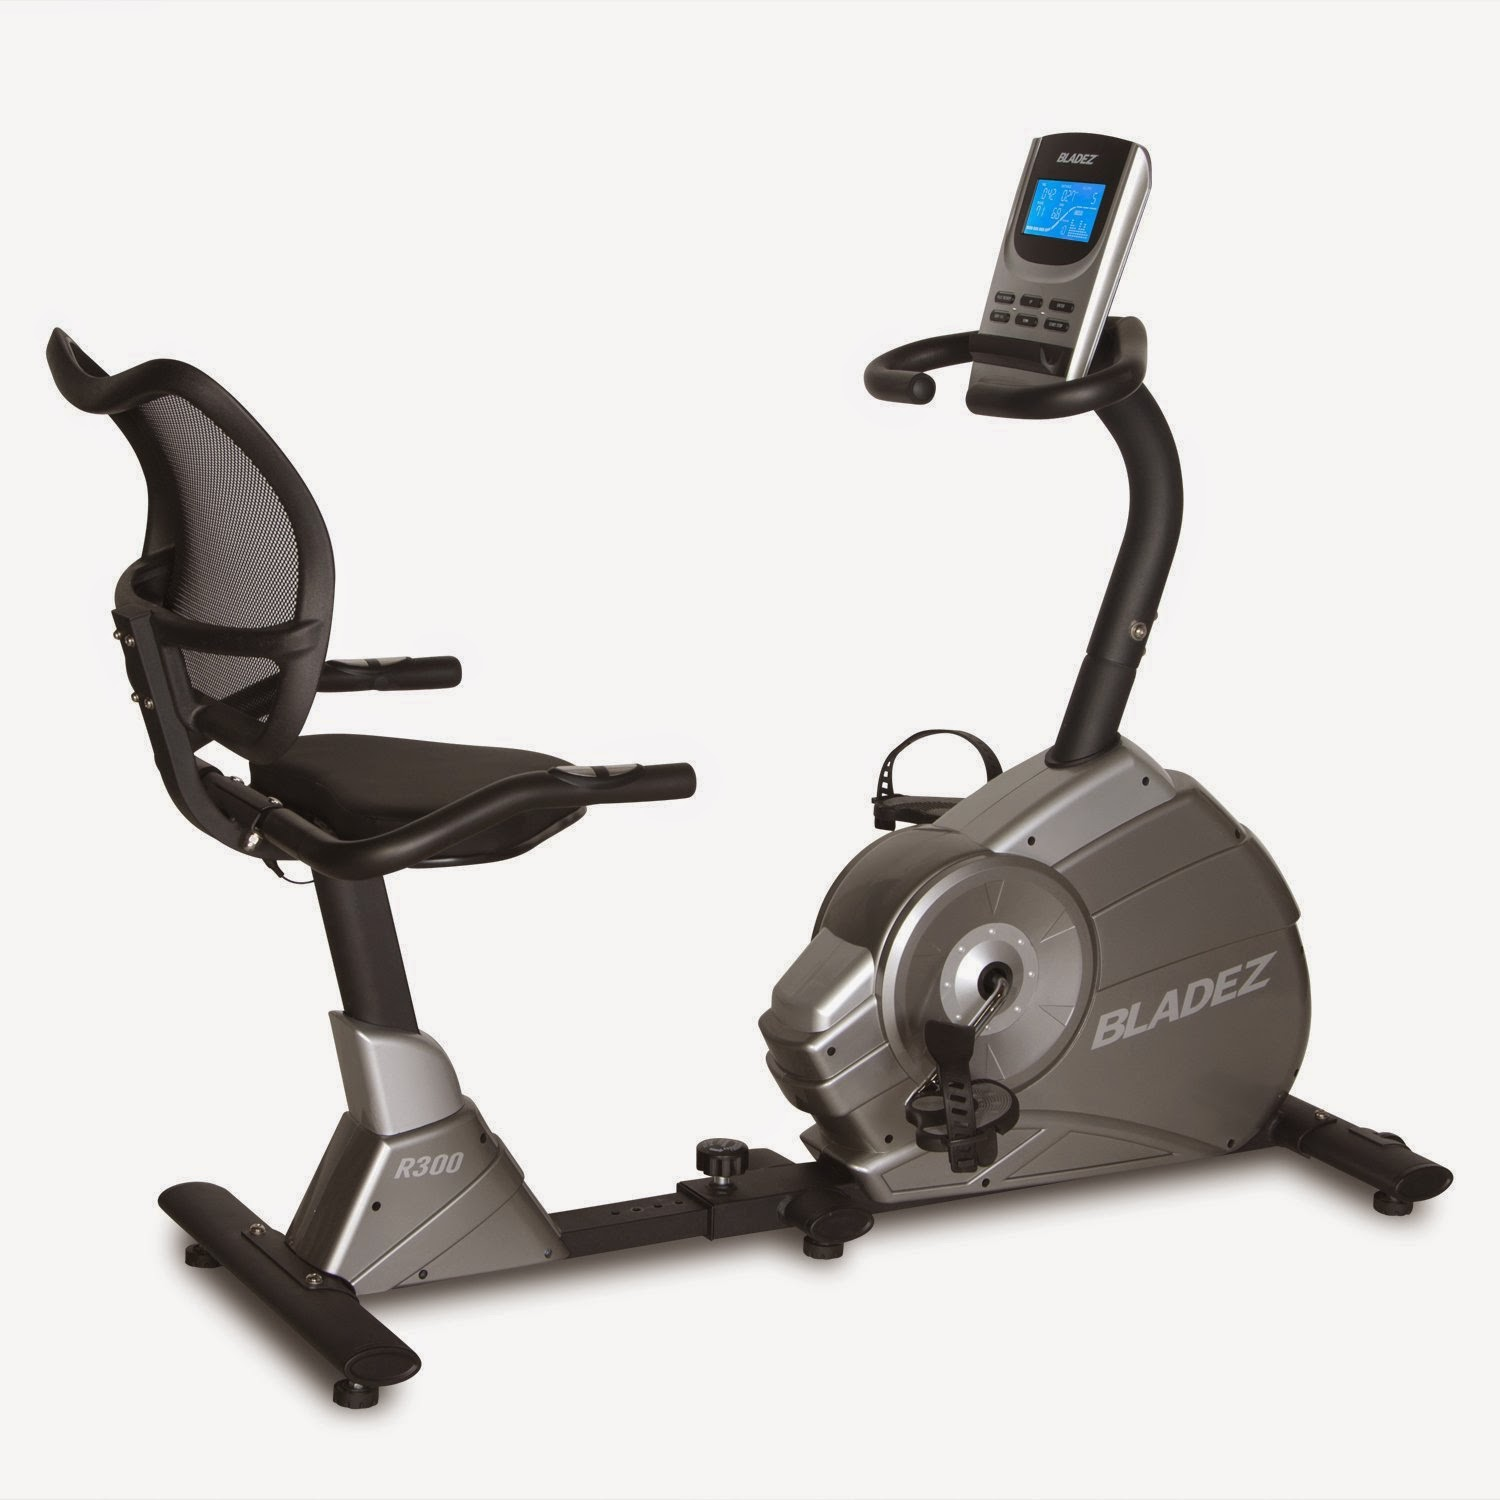 Bladez Fitness R300 Recumbent Exercise Bike, picture, image, review features & specifications, plus compare with Bladez R500i